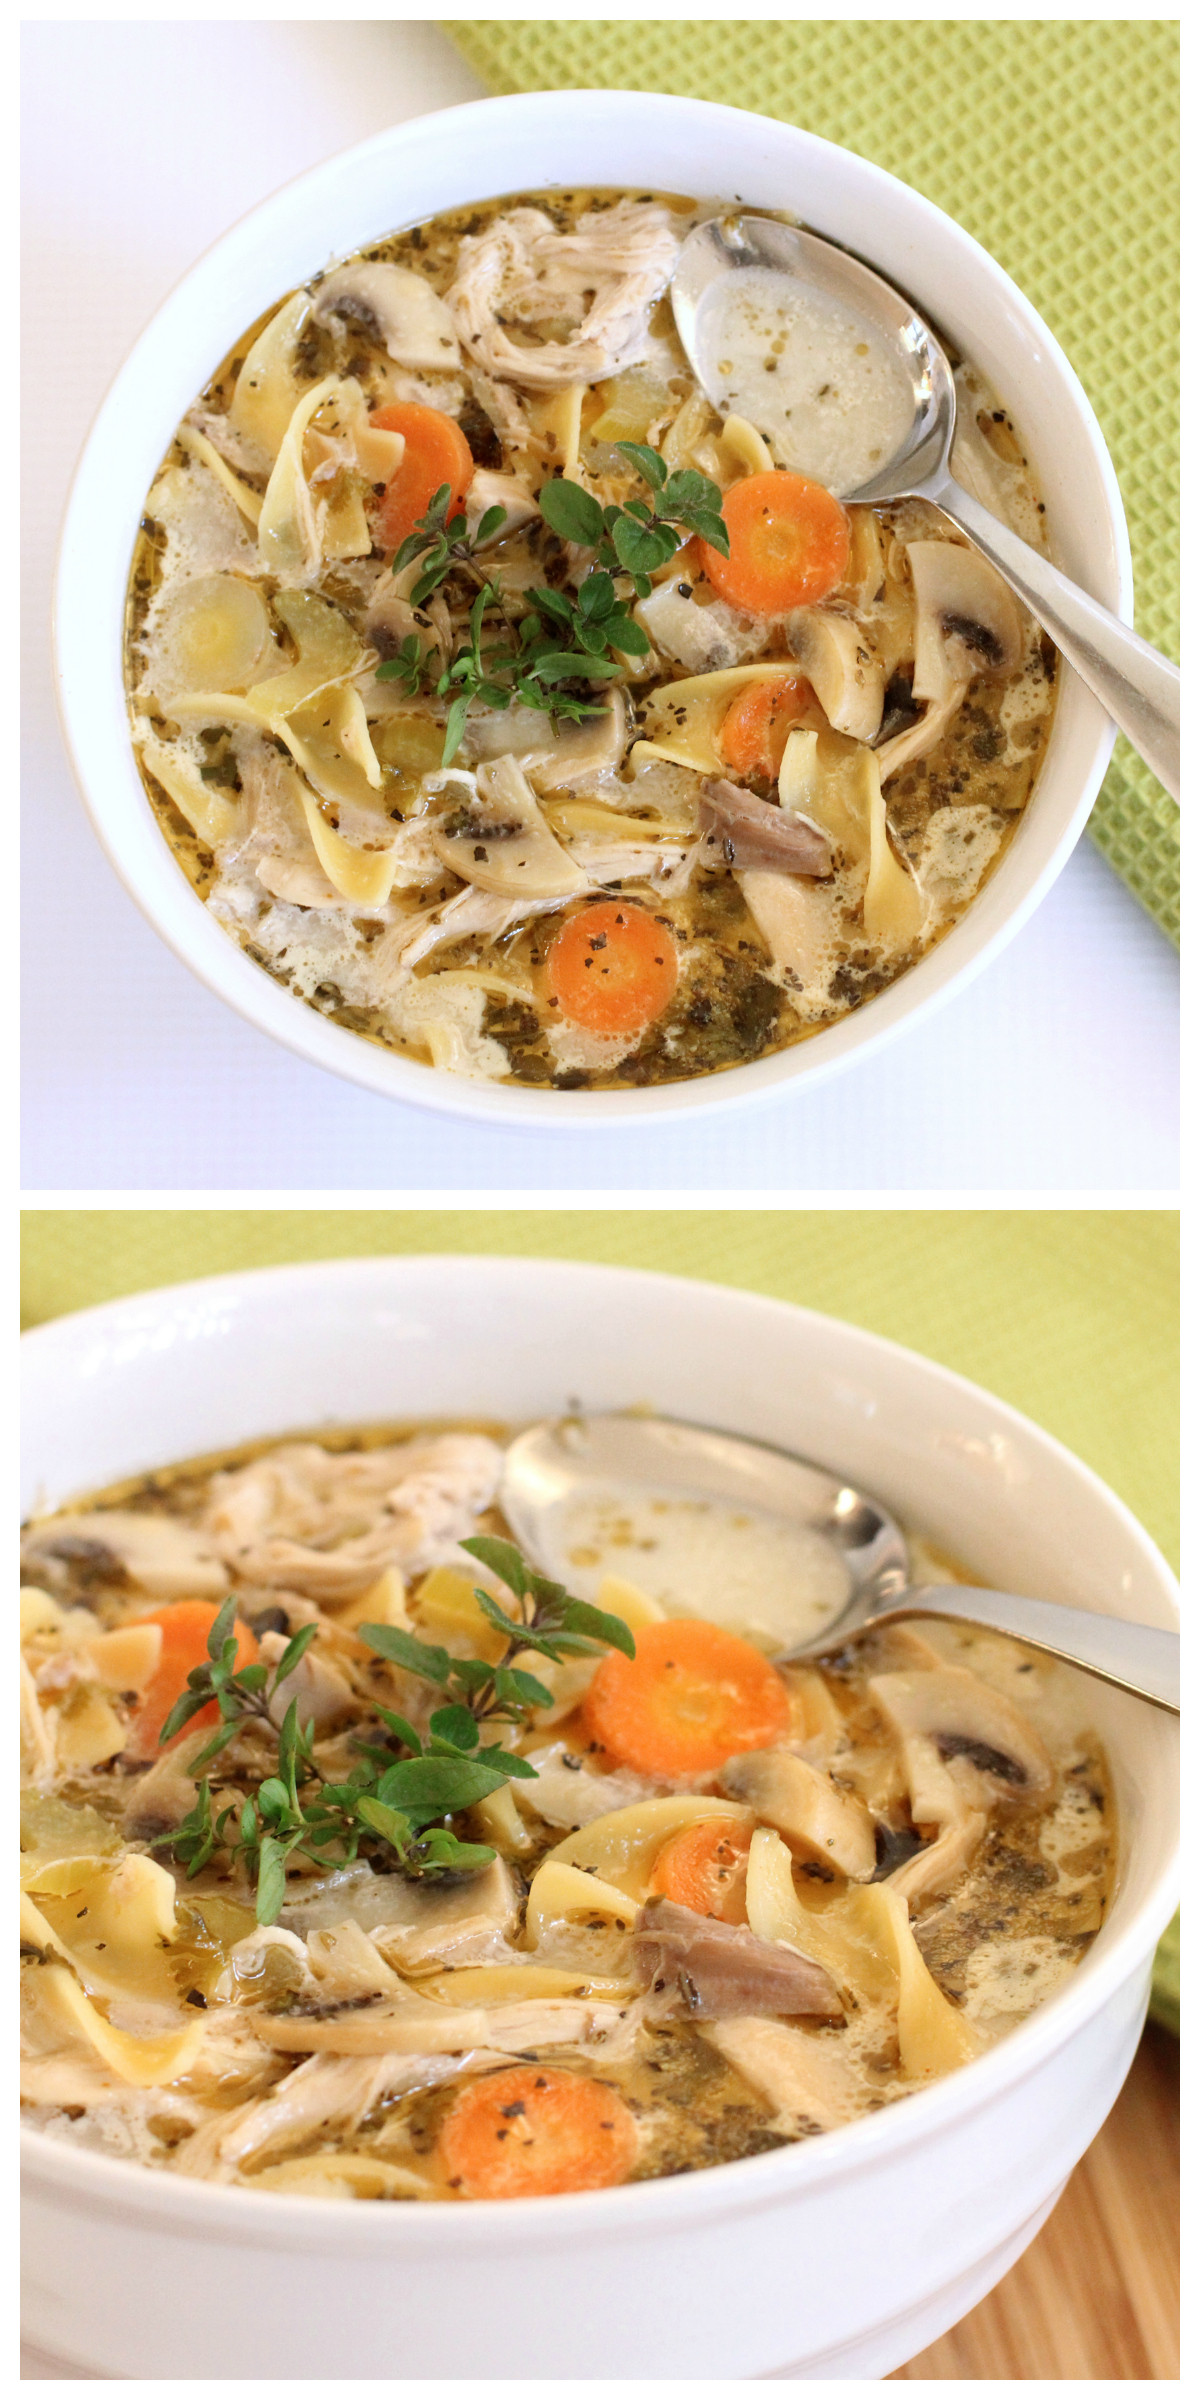 Chicken Noodles Recipe  The Best Chicken Noodle Soup You ll Ever Eat Dabbles